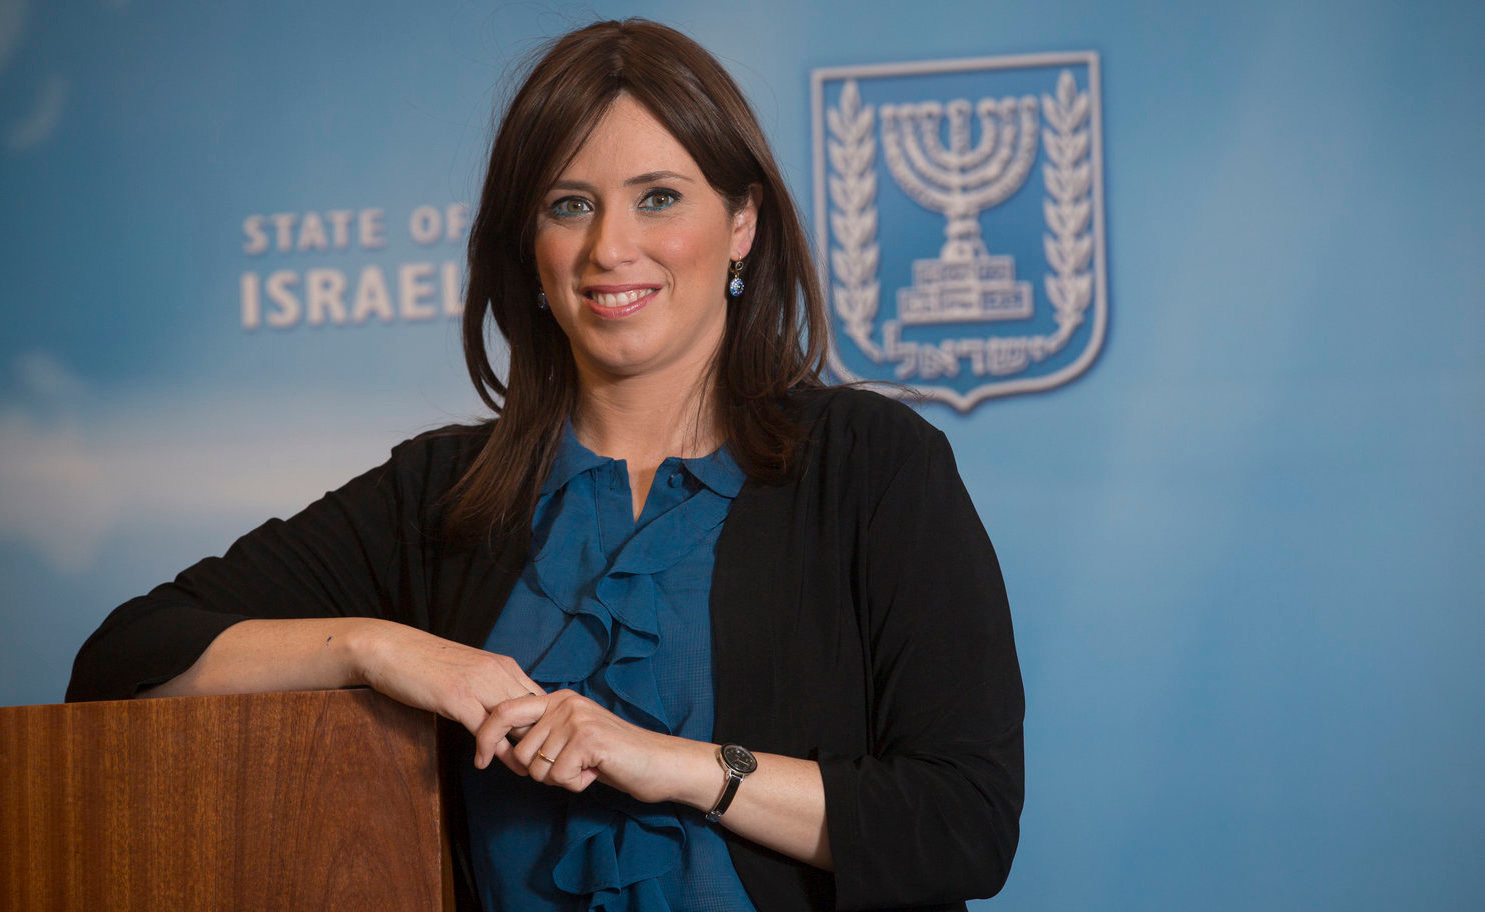 Deputy Foreign Minister Tzipi Hotovely at Israel's Foreign Ministry in Jerusalem.